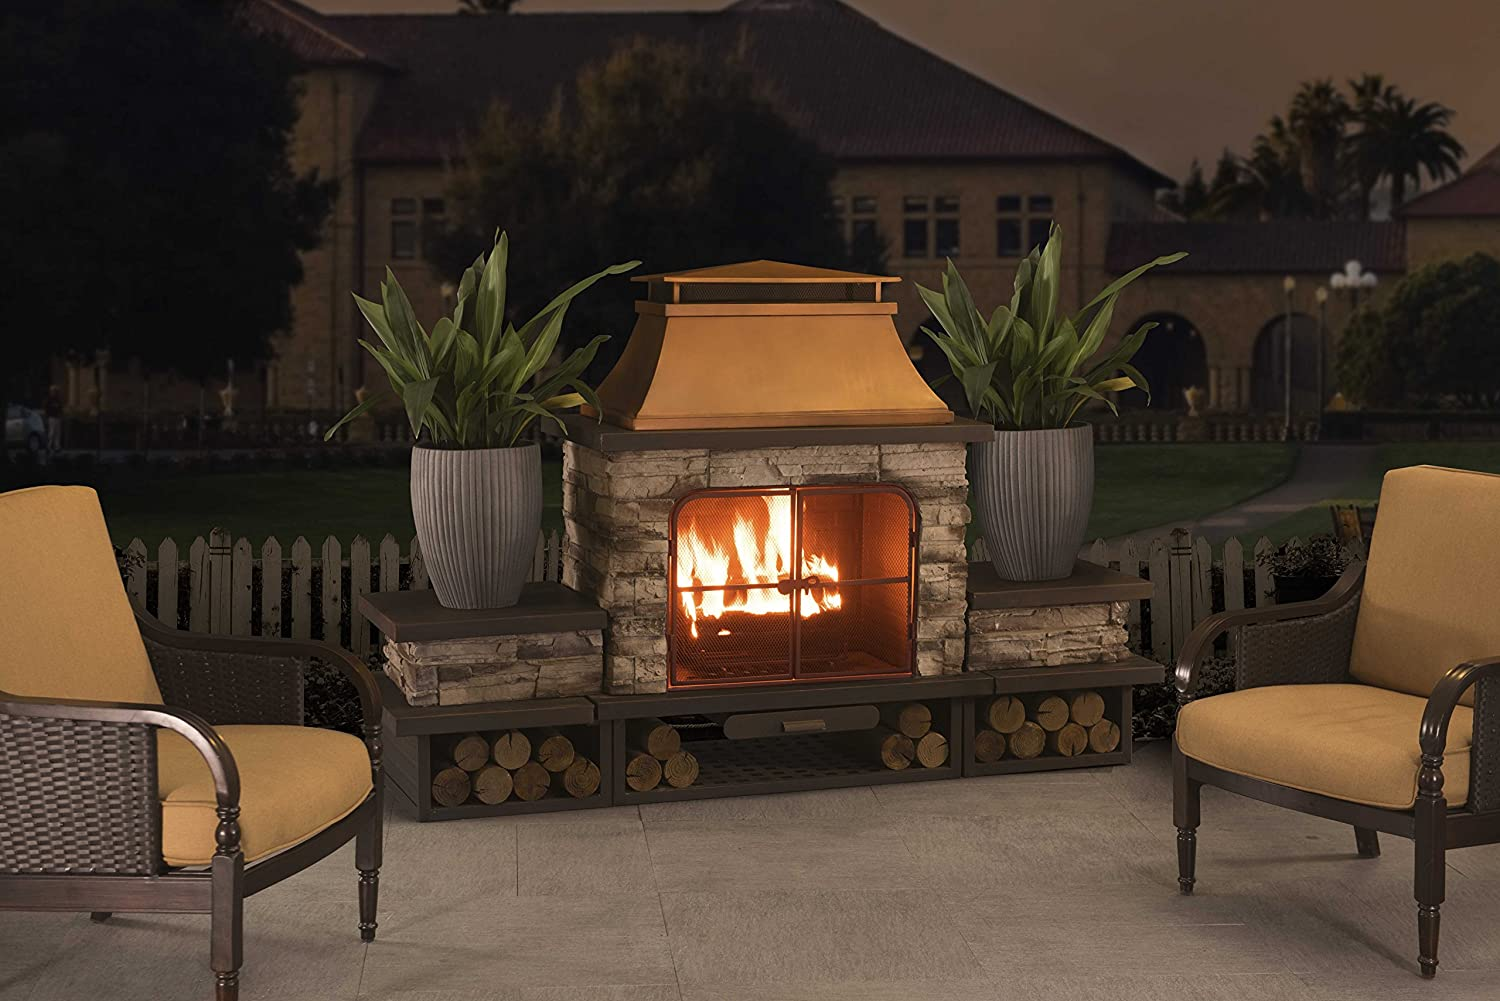 amazon com sunjoy bel aire fireplace large with two table flats